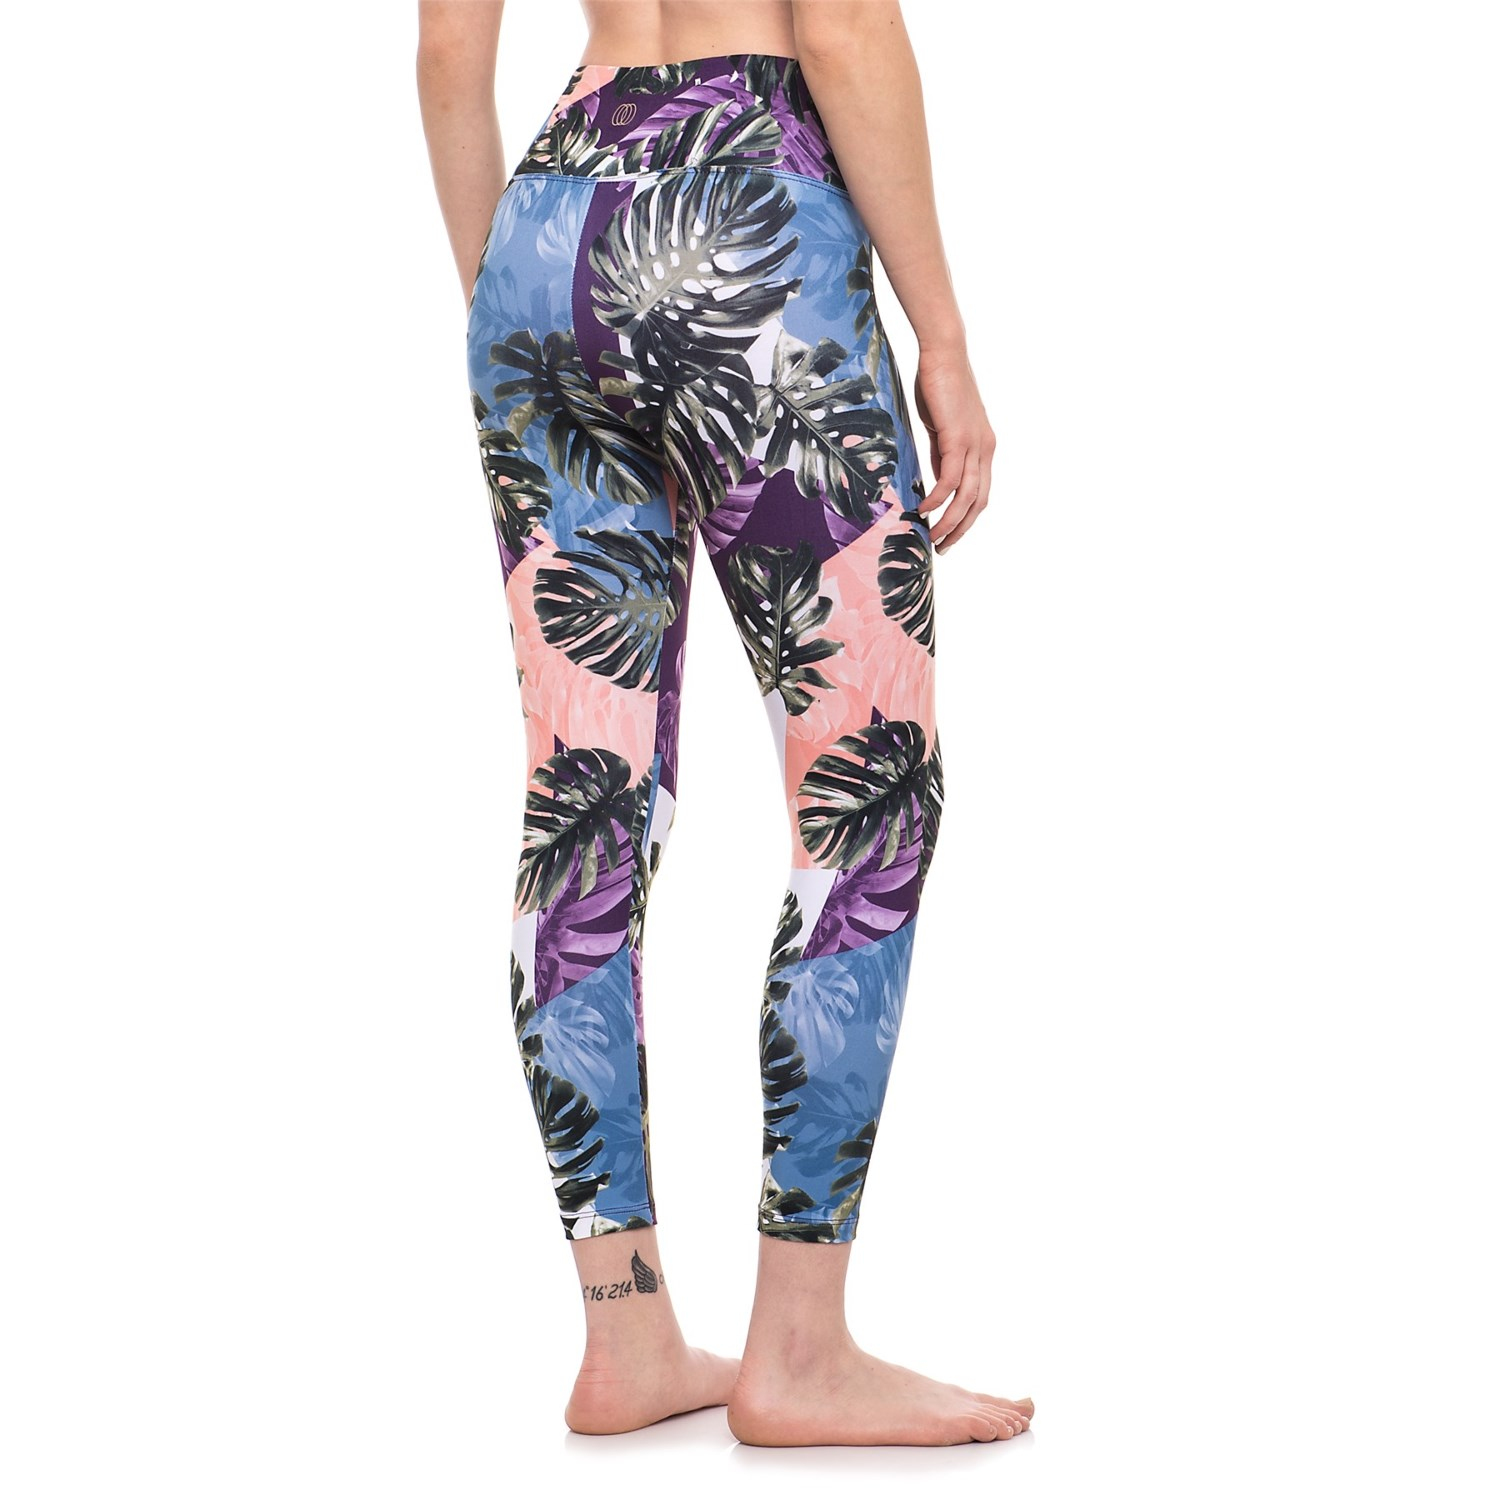 4297d7ef5efc2 Balance Collection Printed High-Waist Capri Leggings (For Women ...